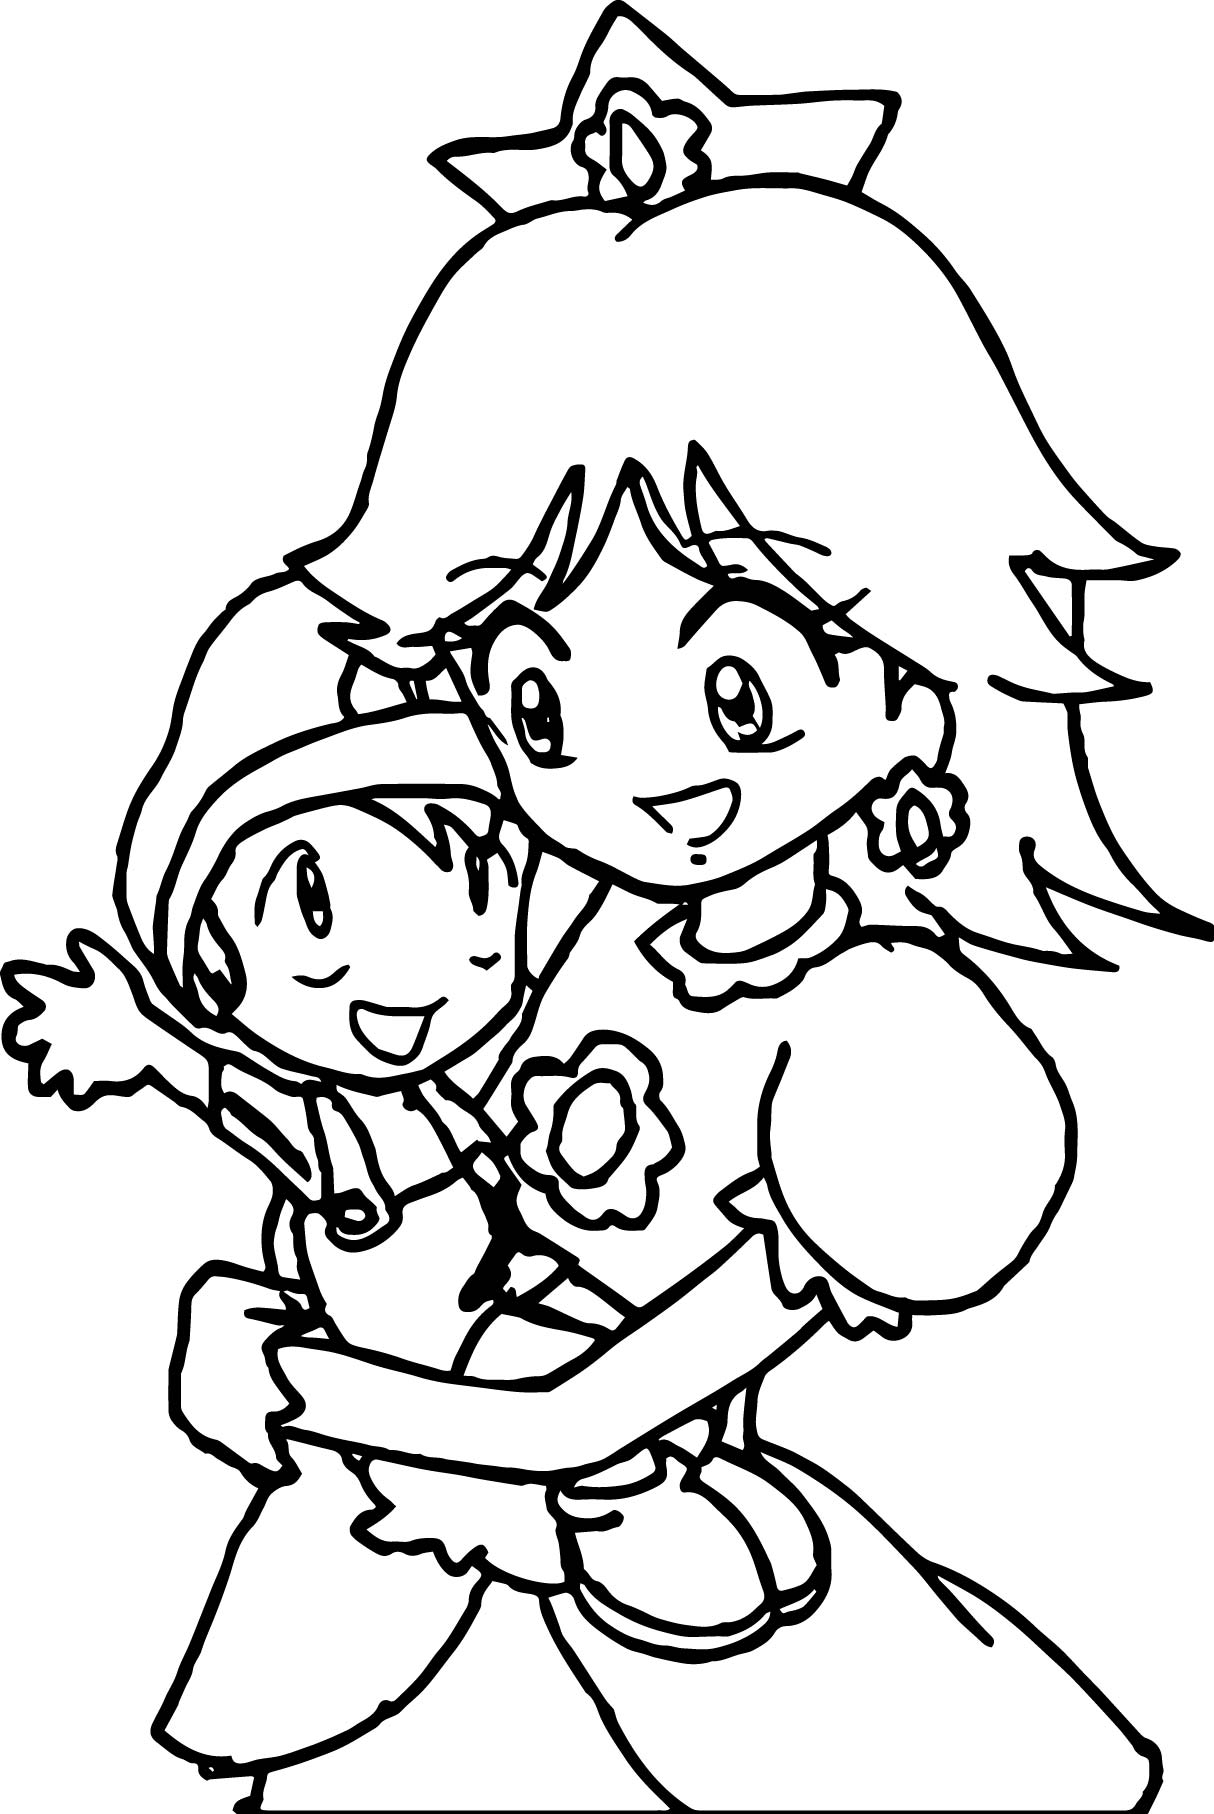 mario coloring pages as babies - photo#30